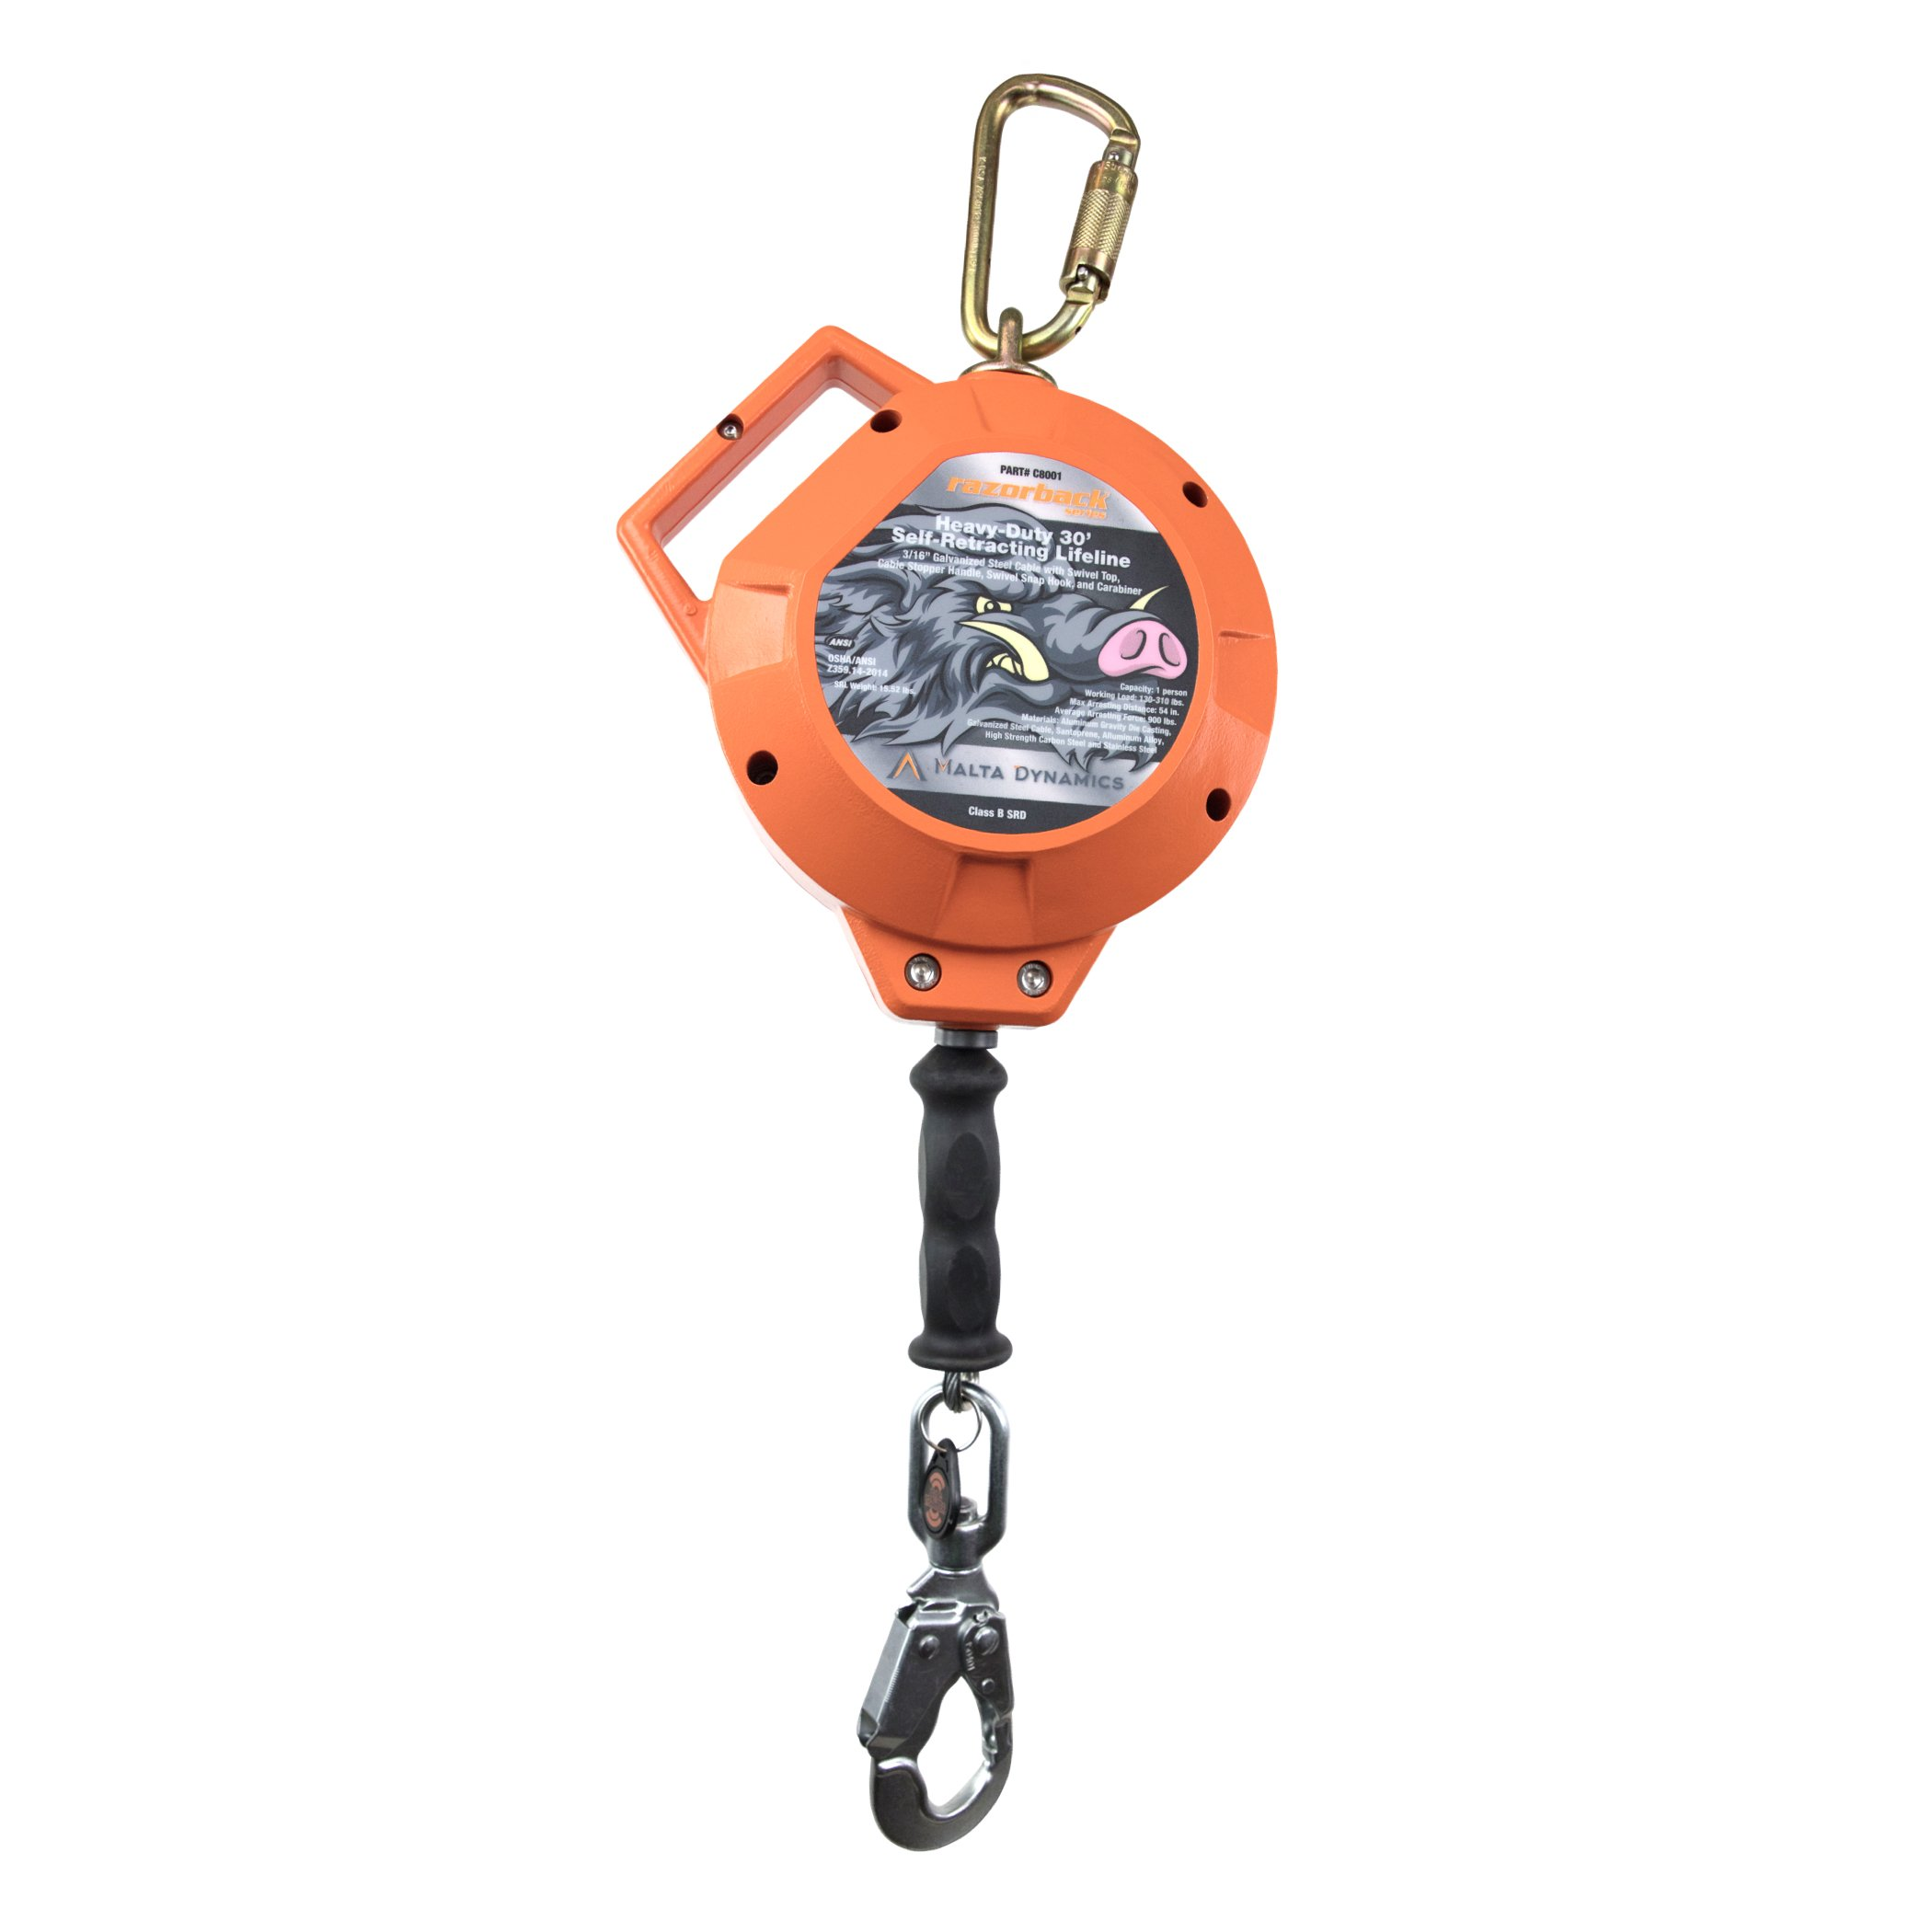 Malta Dynamics Fall Protection, 30-Feet Razorback Heavy-Duty Cable Self Retracting Lifeline with Steel Snap Hook & Carabineer, OSHA/ANSI Compliant by Malta Dynamics